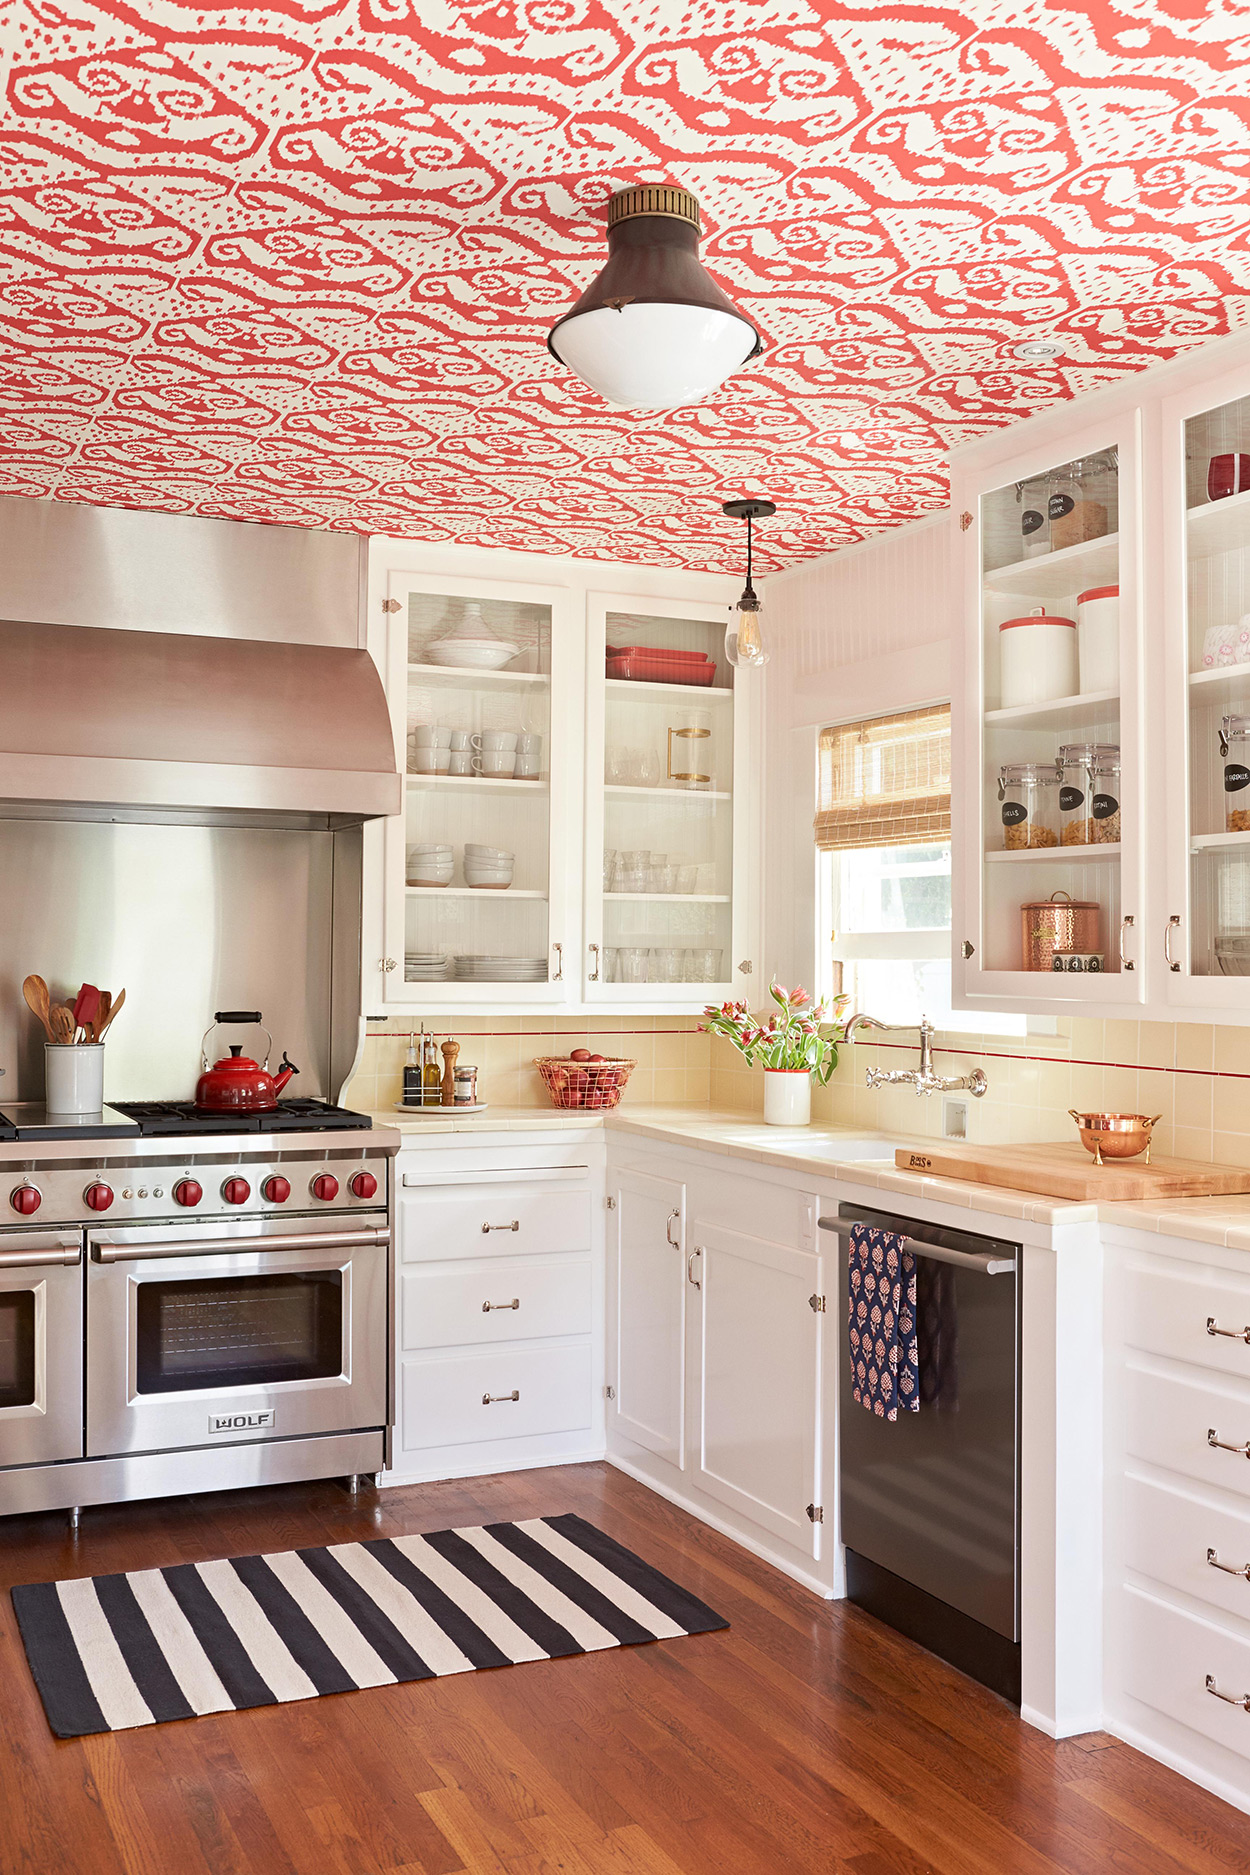 red graphic wallpaper on retro kitchen ceiling